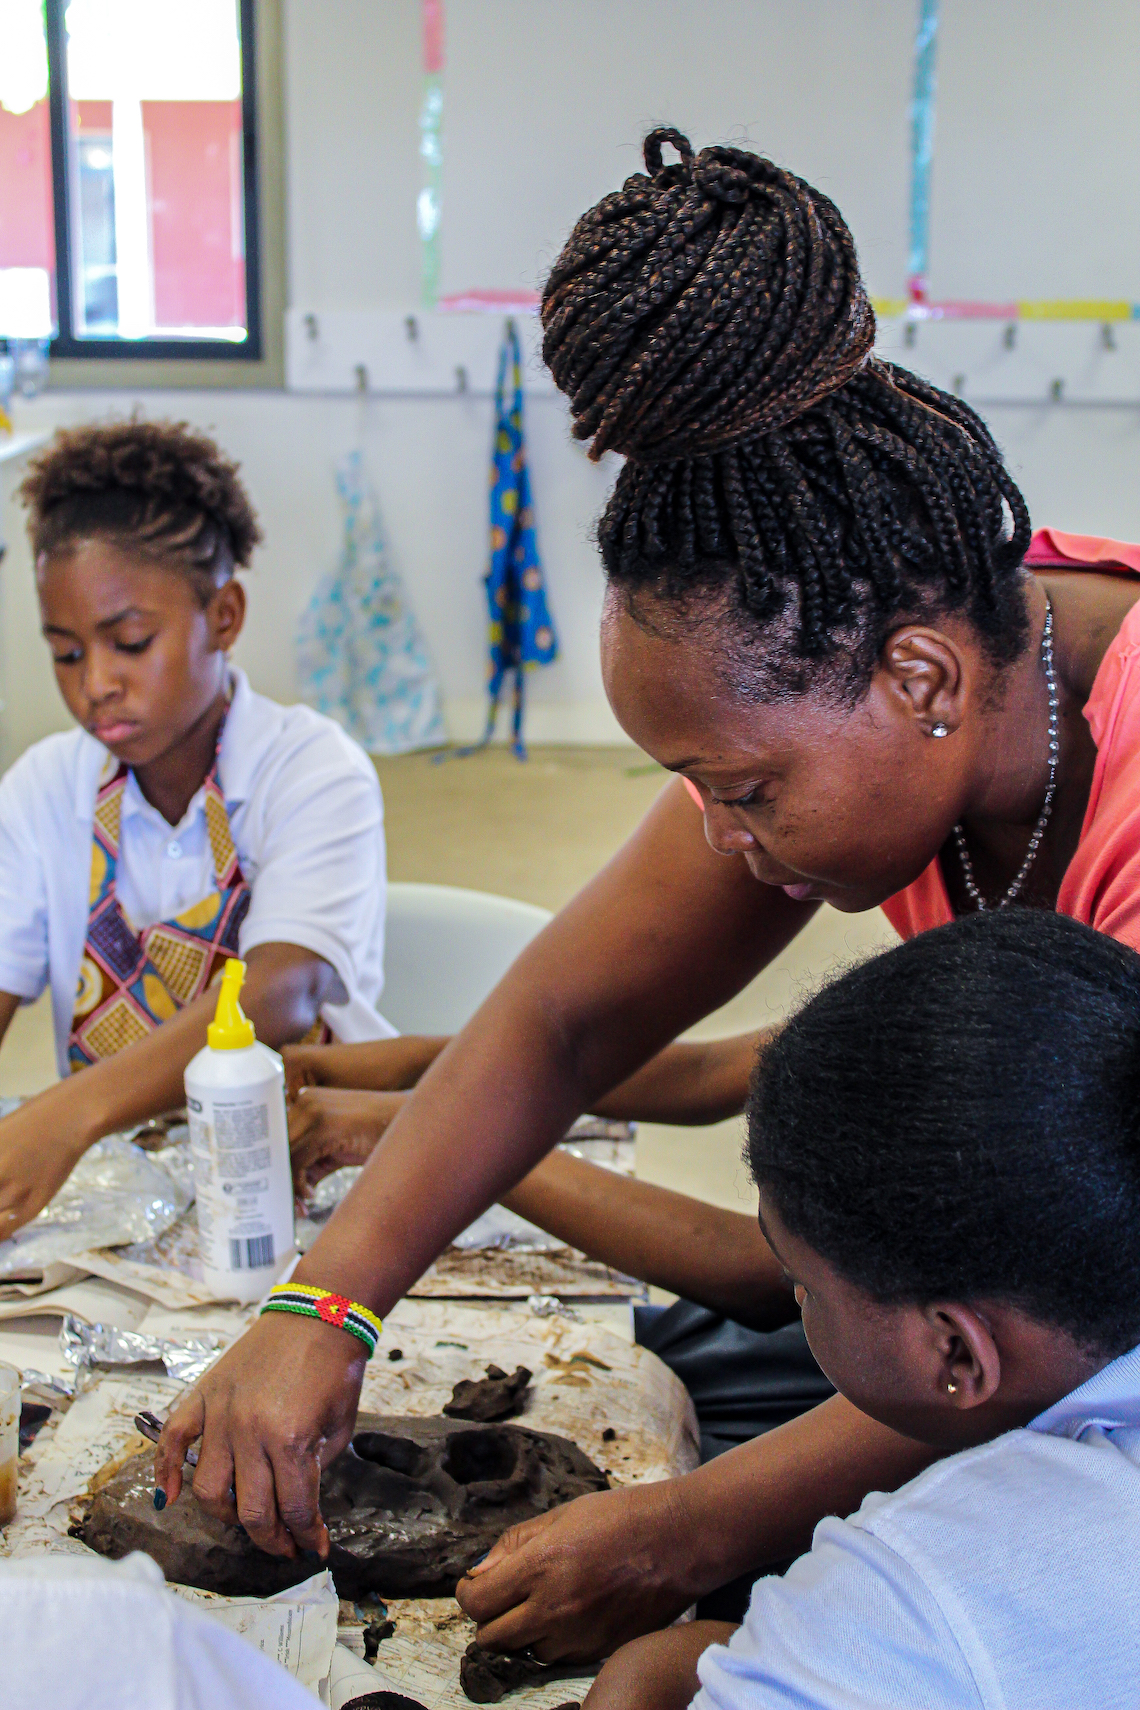 Rosa conducts mask-making classes through her Drama classes as another form of self-expression.